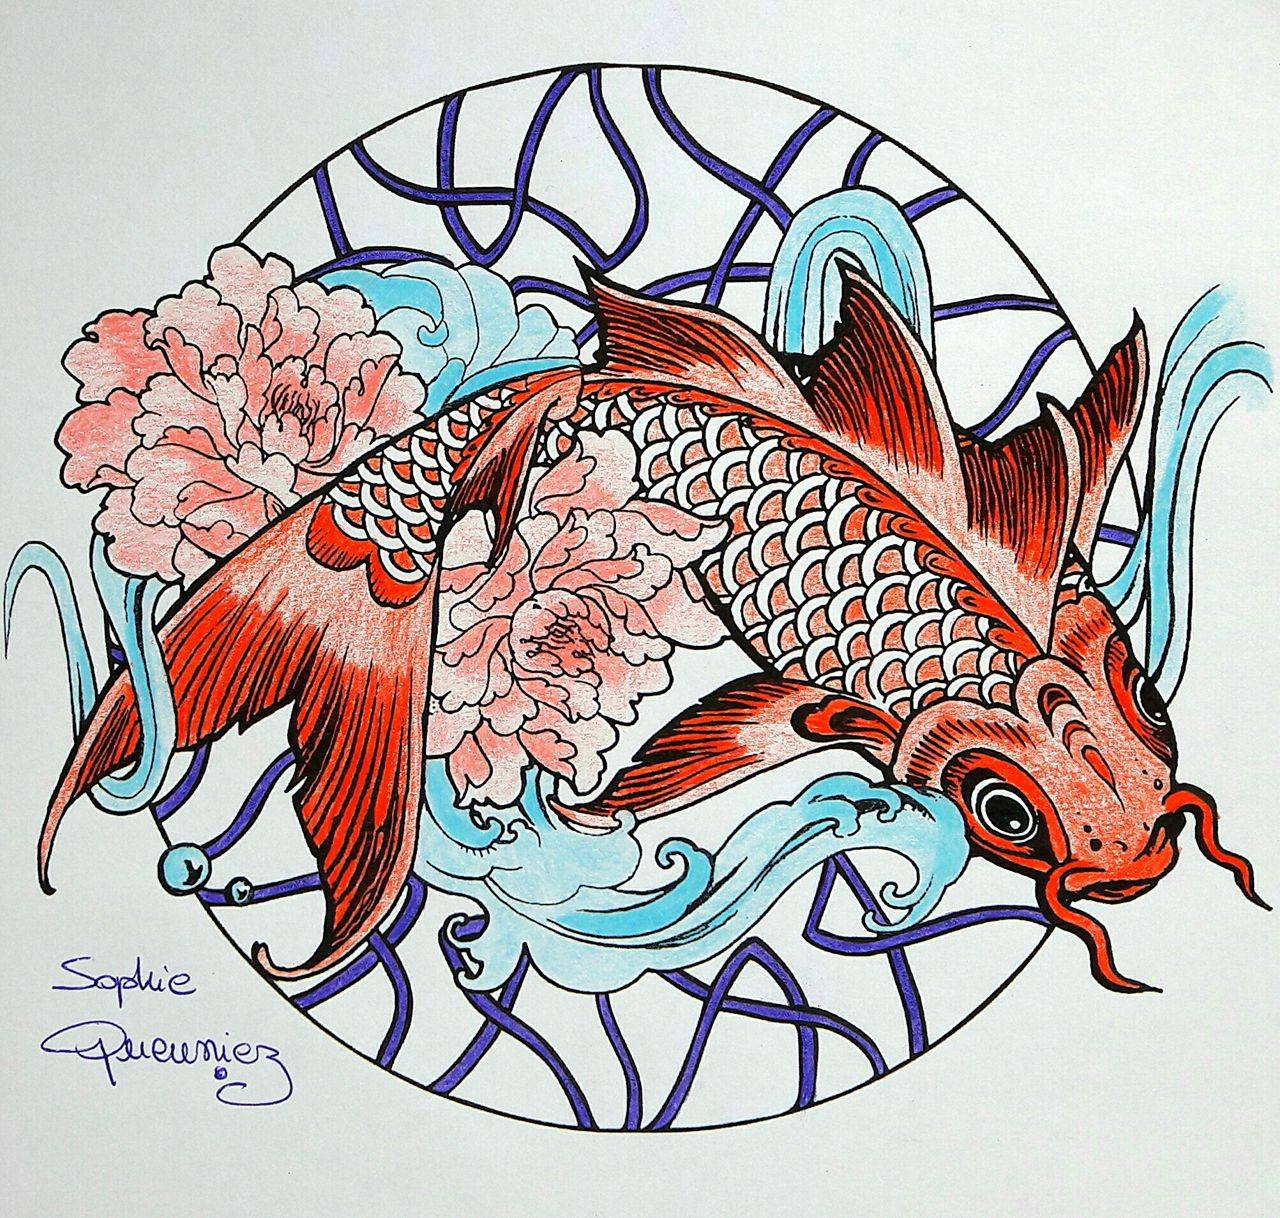 Coloring Tutorial Carp Mandala With Colouring Pencils By Sophie